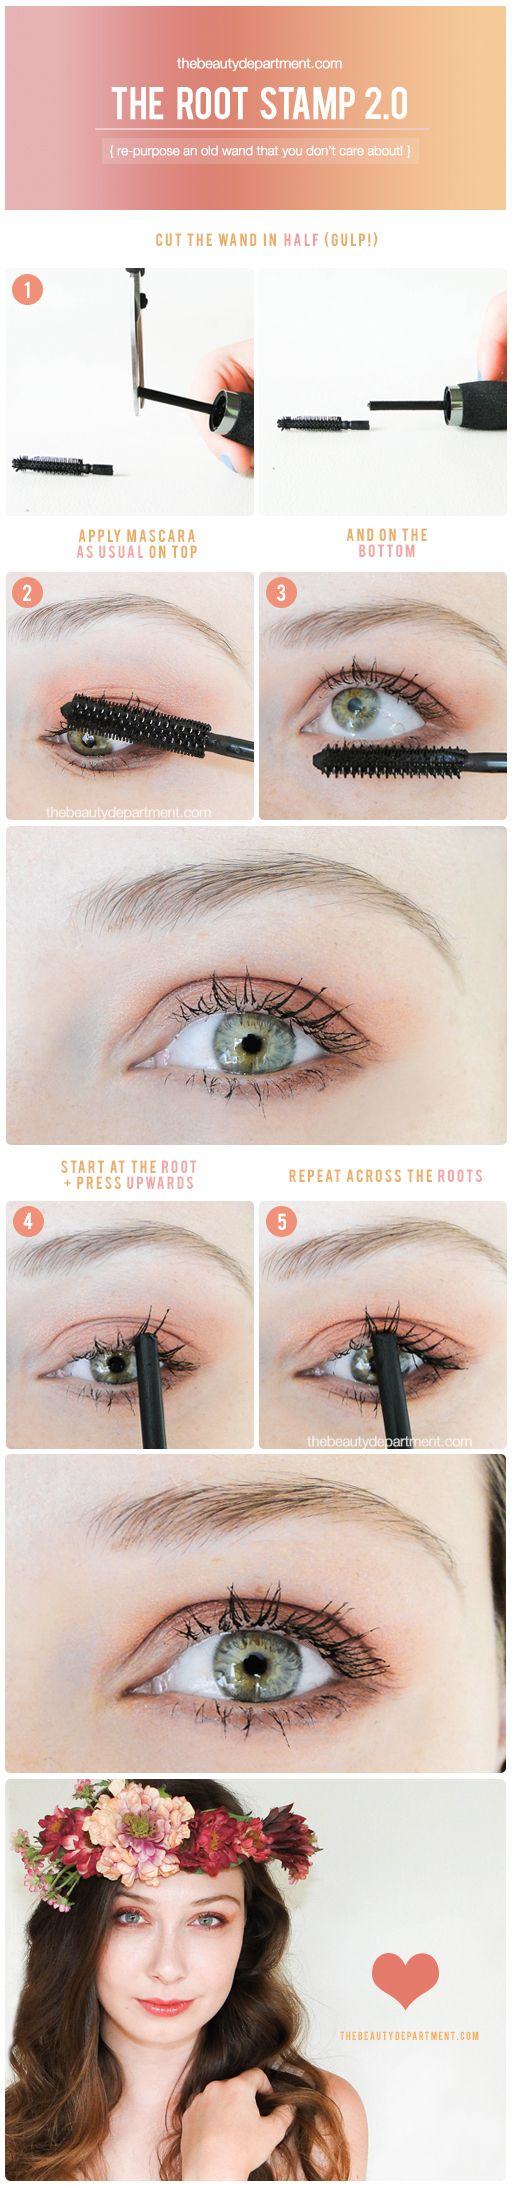 how to clean old mascara wand